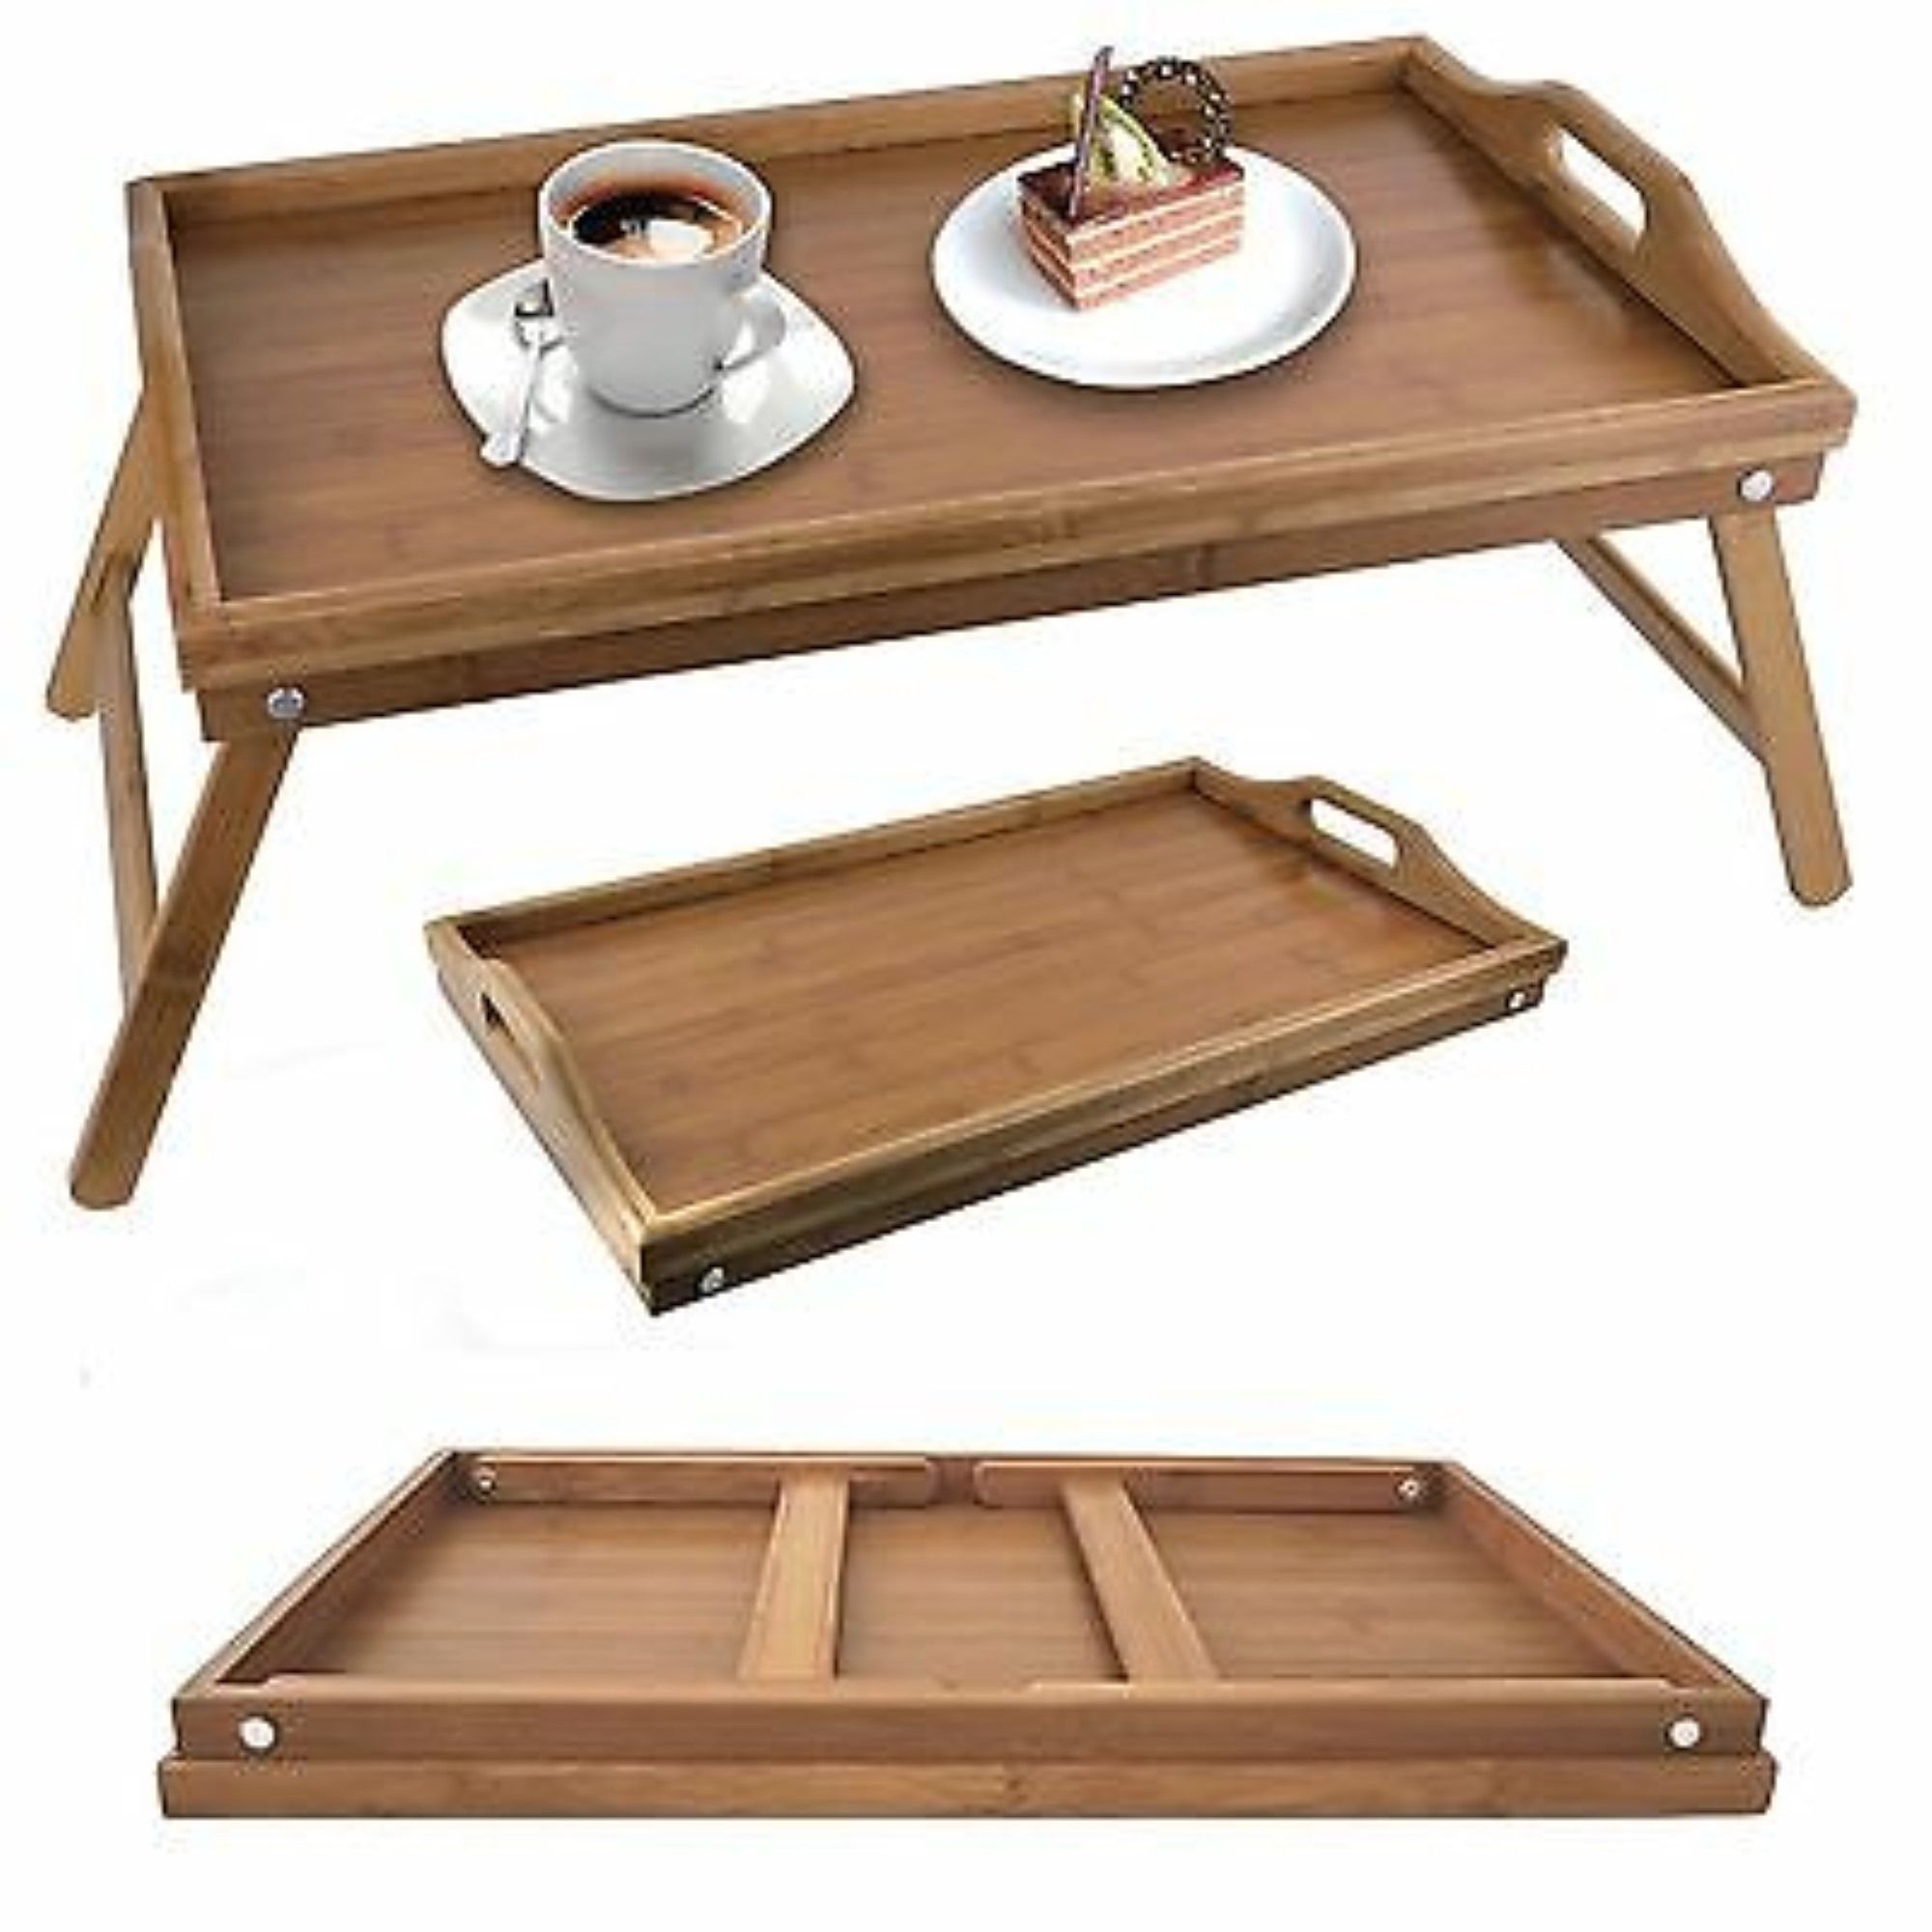 Folding Legs Equipped With Folding Legs Allowing You To Prop Up The Bamboo Serving Tray To Create A Stand Or Fold Down To Bed Tray Diy Bed Tray Table Bed Tray